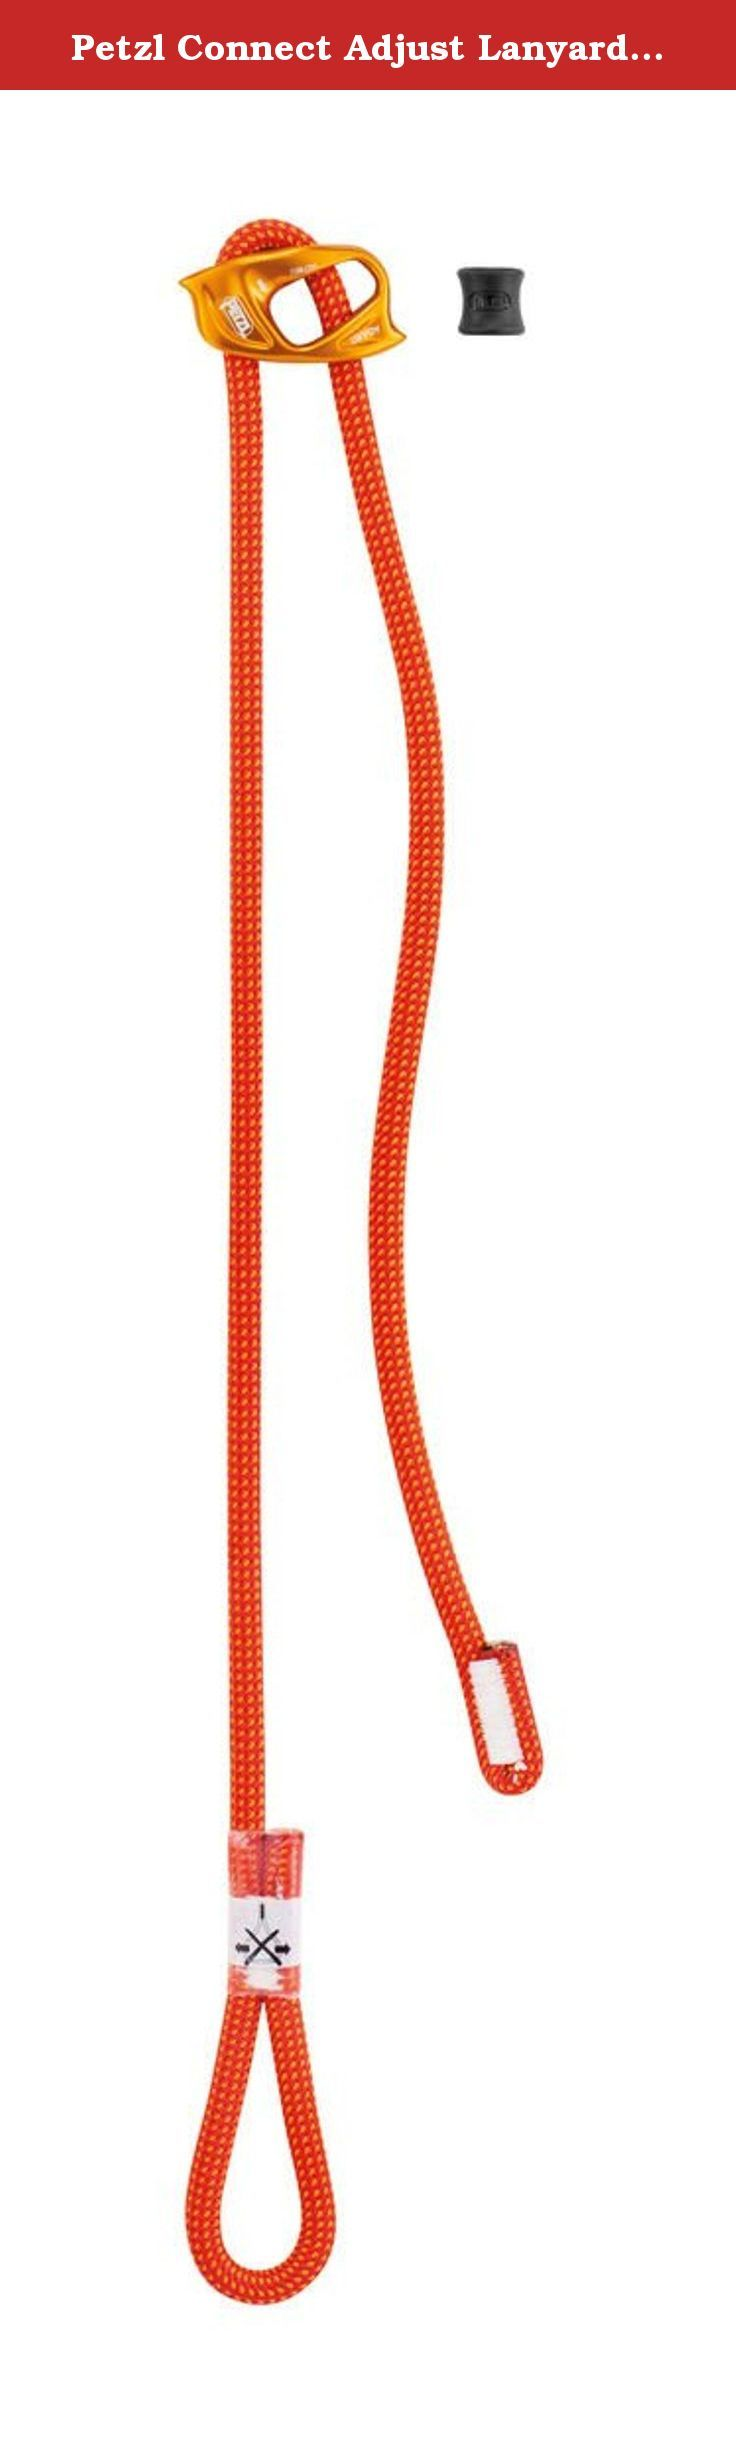 Petzl Connect Adjust Lanyard One Size. FEATURES of the Petzl Connect Adjust Lanyard Single positioning lanyard with adjustable arm The ADJUST rope adjuster's ergonomic shape offers quick, precise adjustment Lanyard adjusts from 15 to 95 cm The connector held in position by a rubber ring, to facilitate clipping Dynamic rope lanyard to reduce the force transmitted to the user in case of a short fall Attaches to the tie-in point(s) of the harness with a girth hitch.